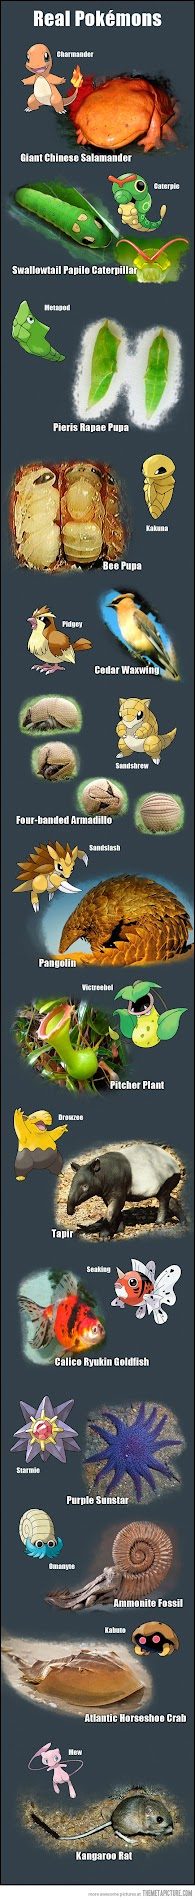 real world pokemon